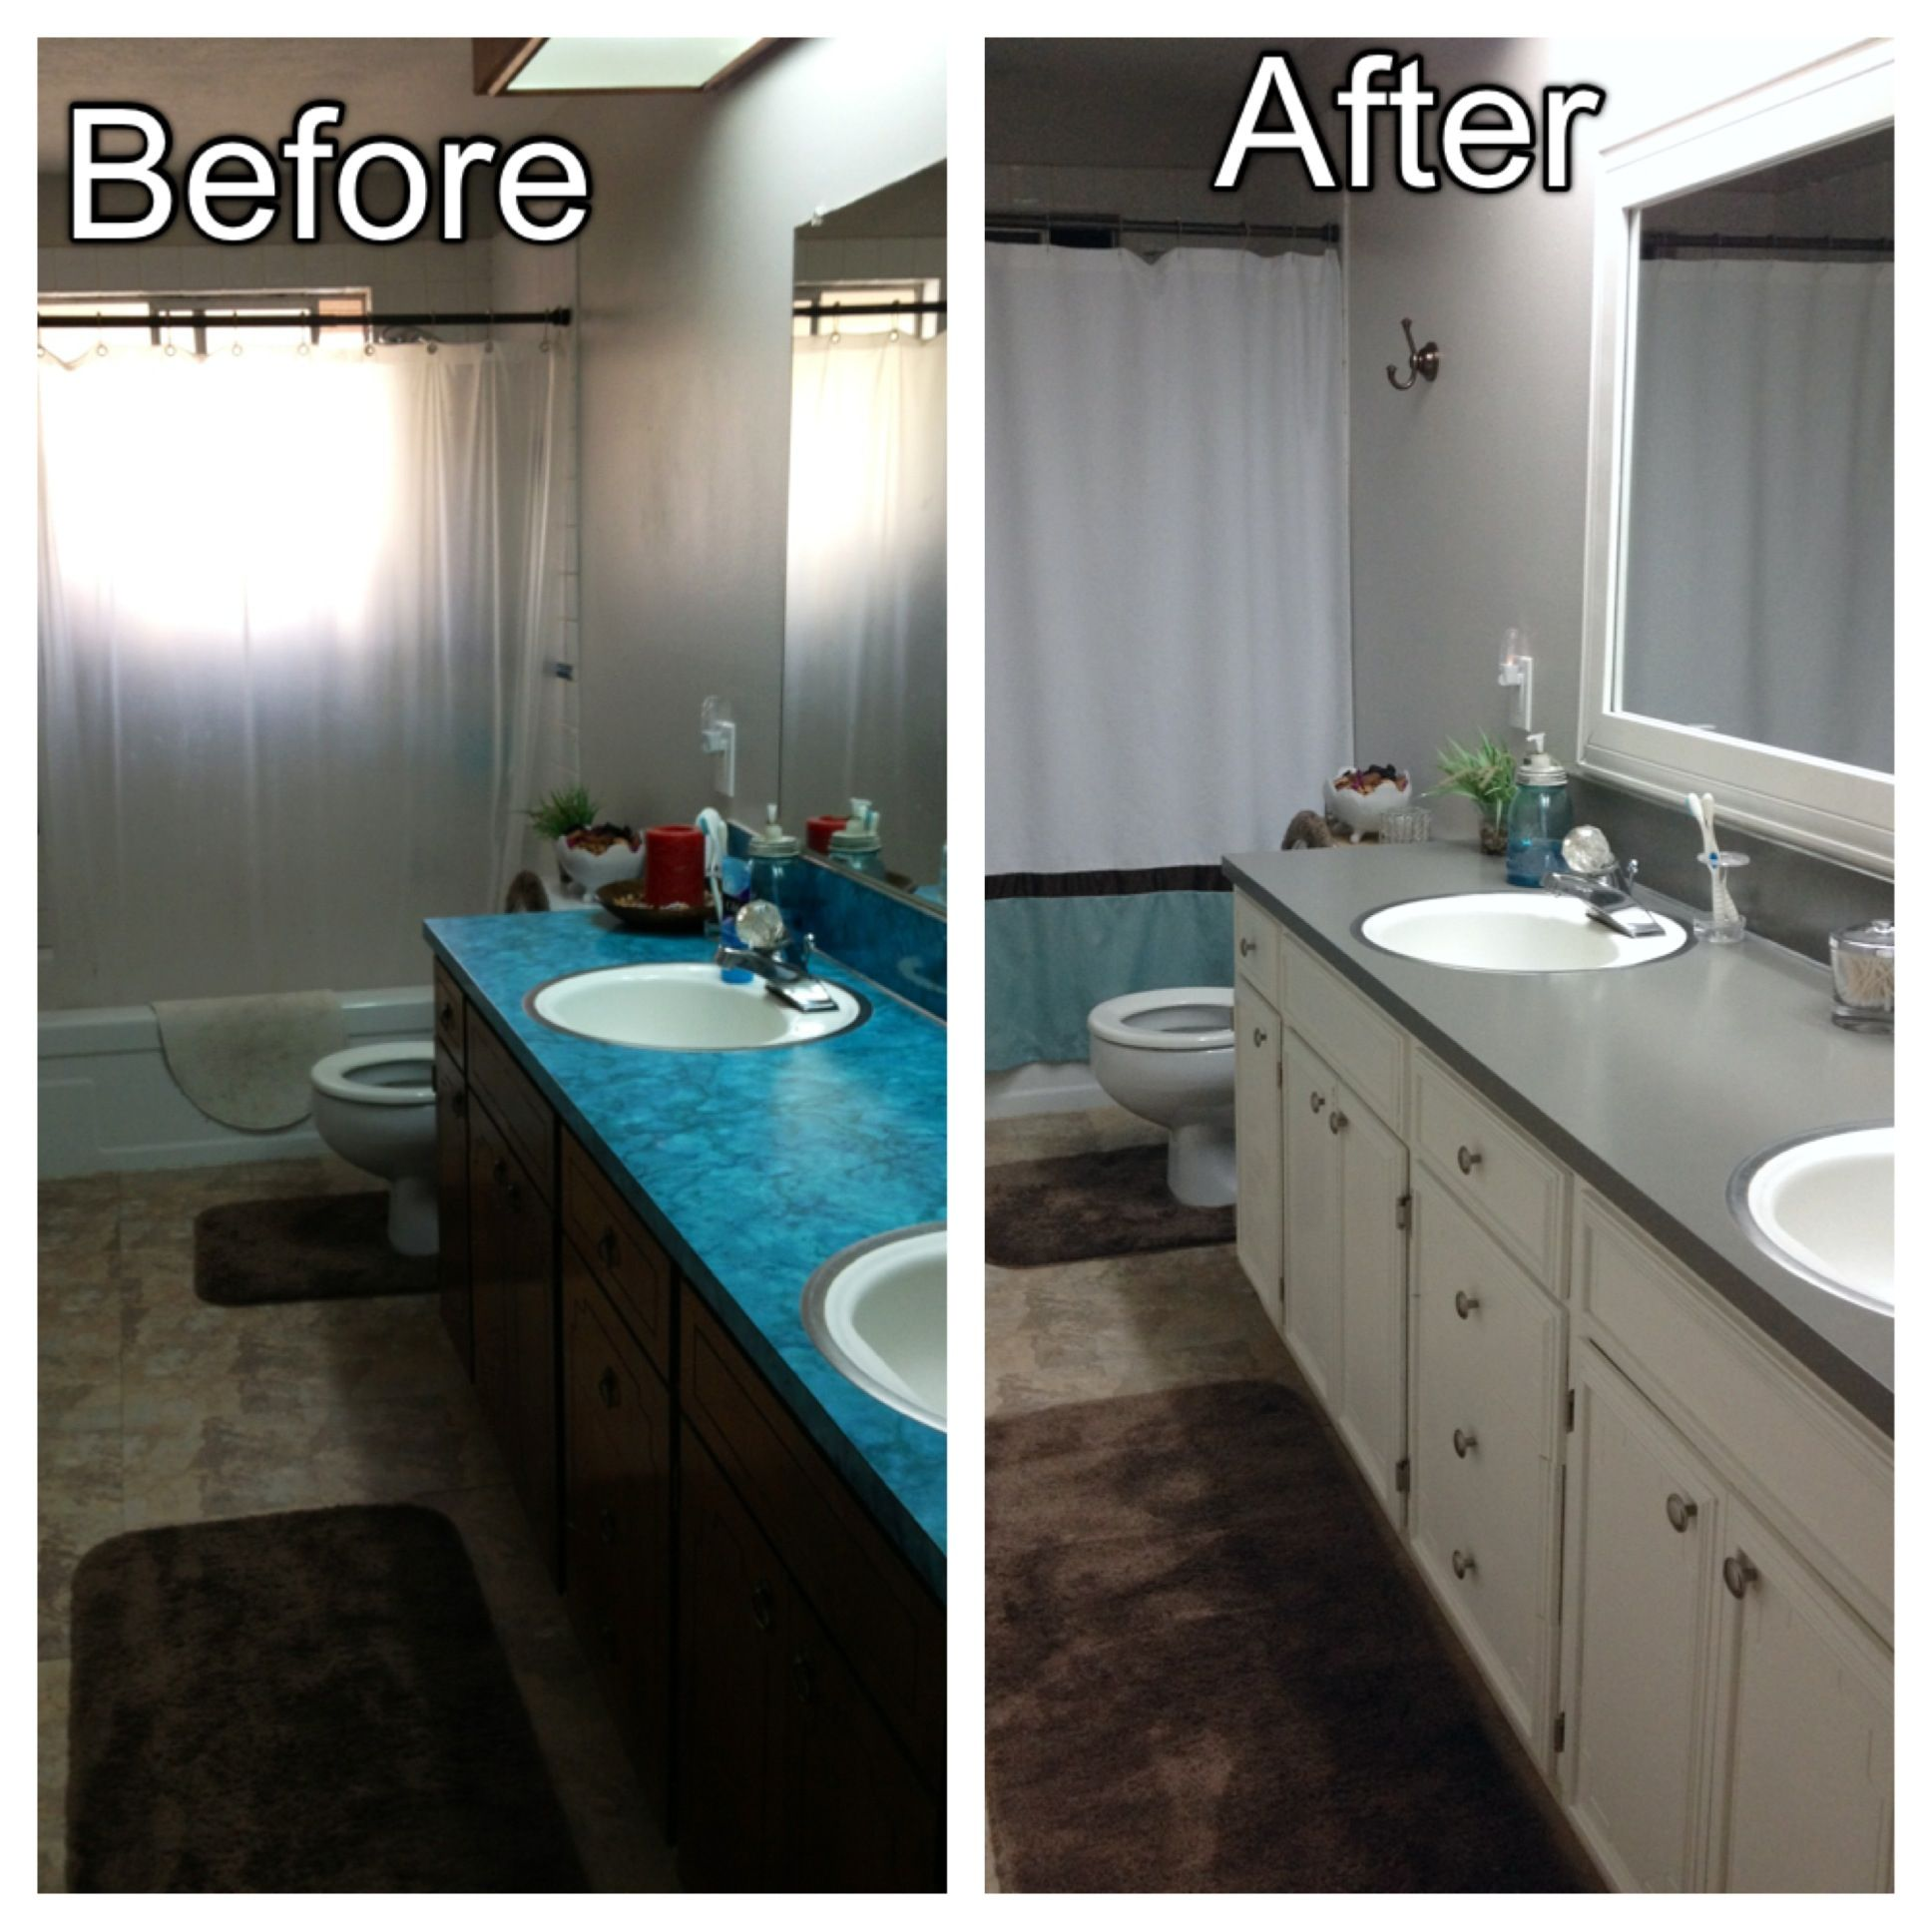 011a7231583eb3f4dba7621593f94fea Paint Bathroom Design Layout on pool design layout, small bathroom layout, 7 x 8 bathroom layout, traditional design layout, shower layout, 7 x 12 bathroom layout, 9 by 9 bathroom layout, spa bathroom layout, bathroom layouts for a 6x13, bathroom ideas, beach design layout, create your own bathroom layout, bathroom sizes and layouts, bedroom design layout, bathroom furniture, bathroom room layout, employee bulletin board design layout, master bathroom layout, handicap bathroom layout, home interior design layout,